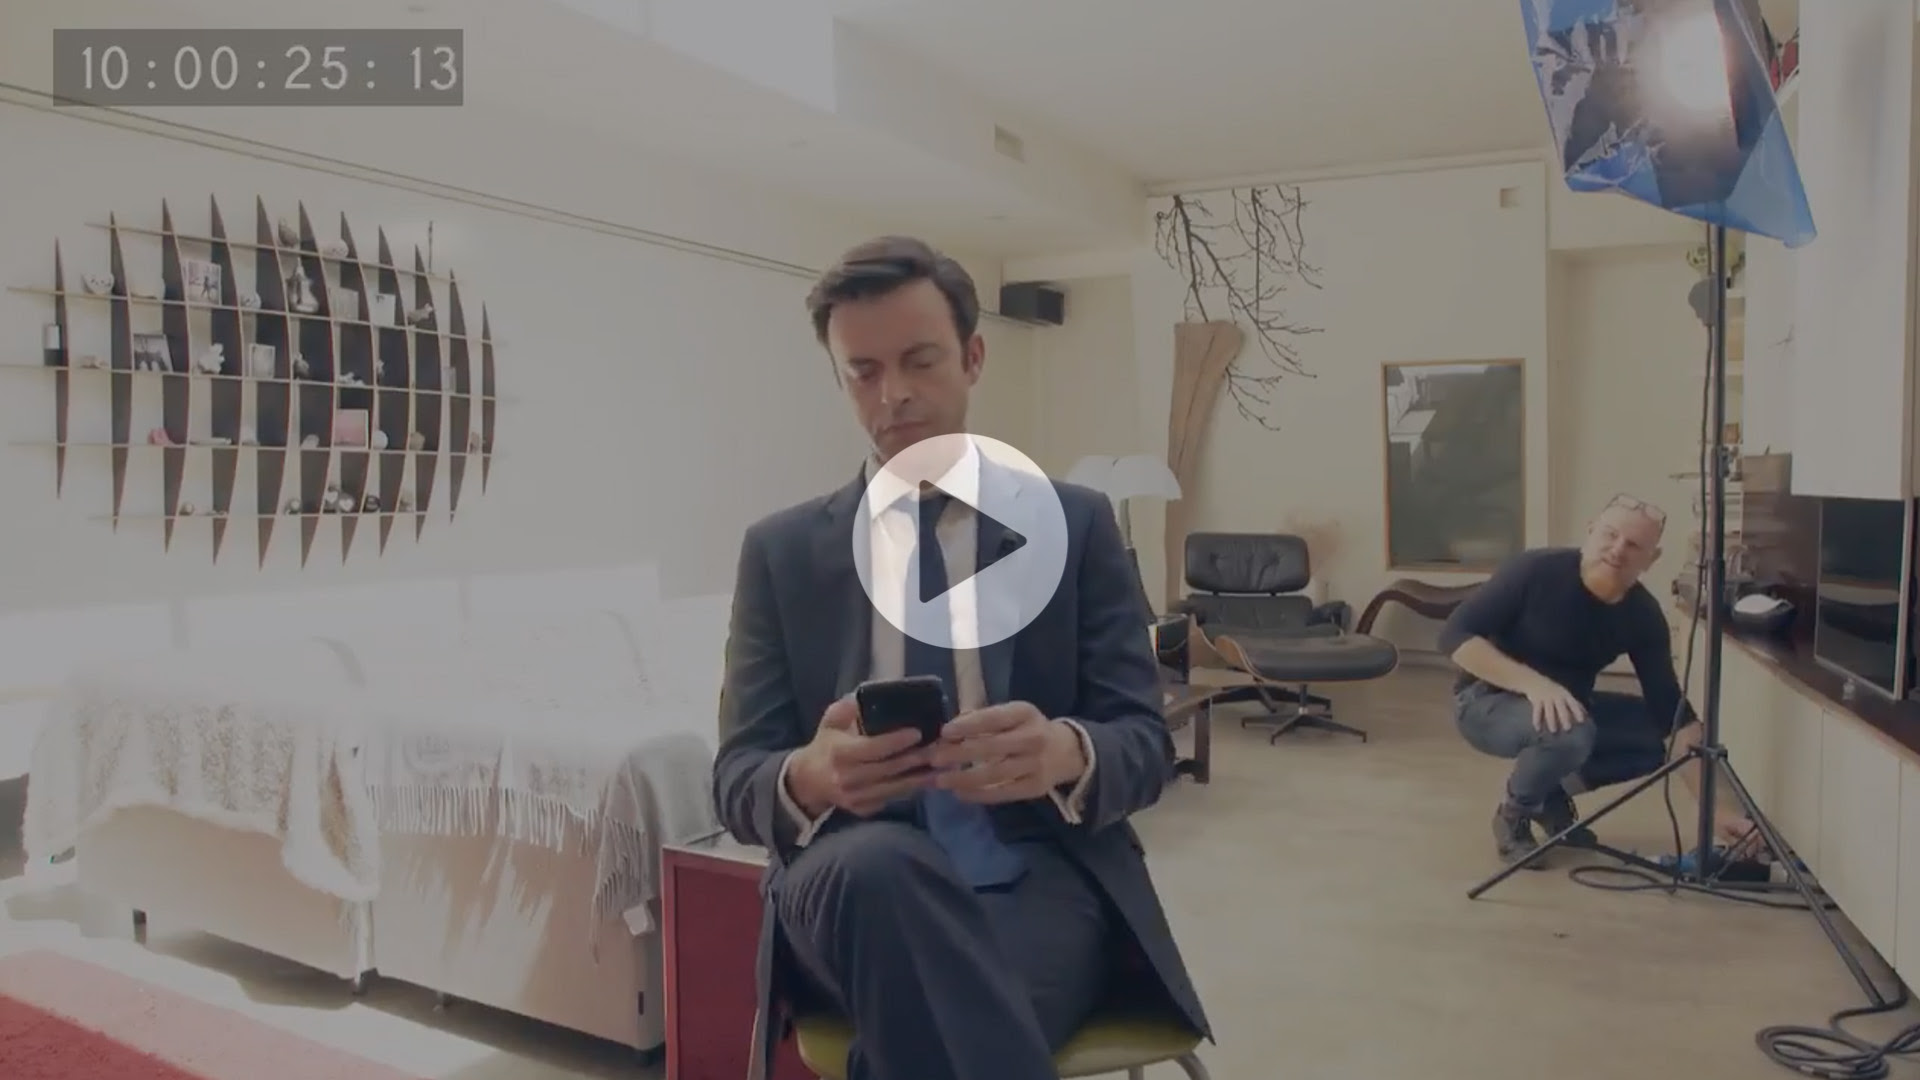 """Still from video, man with short brown hair sits in centre, wearing tie and blazer, looking at his phone, play button in centre"""""""